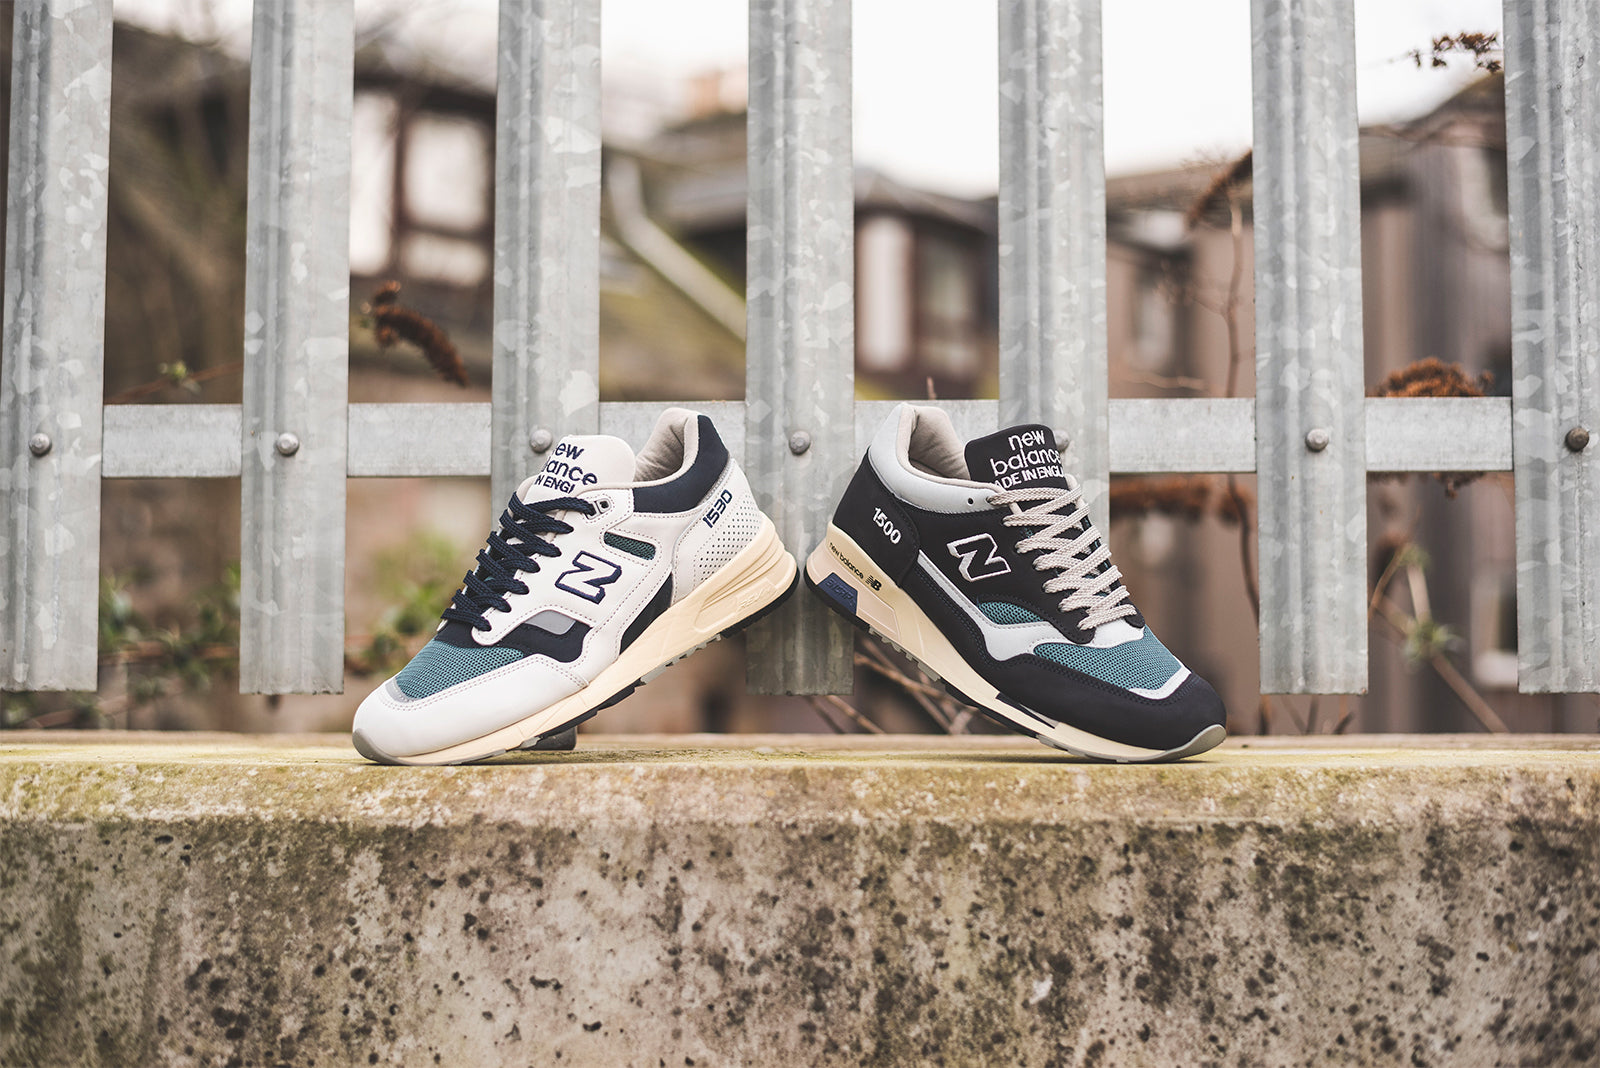 online retailer 54c2e 63175 We ve been treated to some serious reissue biz on the New Balance M1500 of  late. A timely reissue of the 1500TB (Now TBT) as well as some stellar work  ...